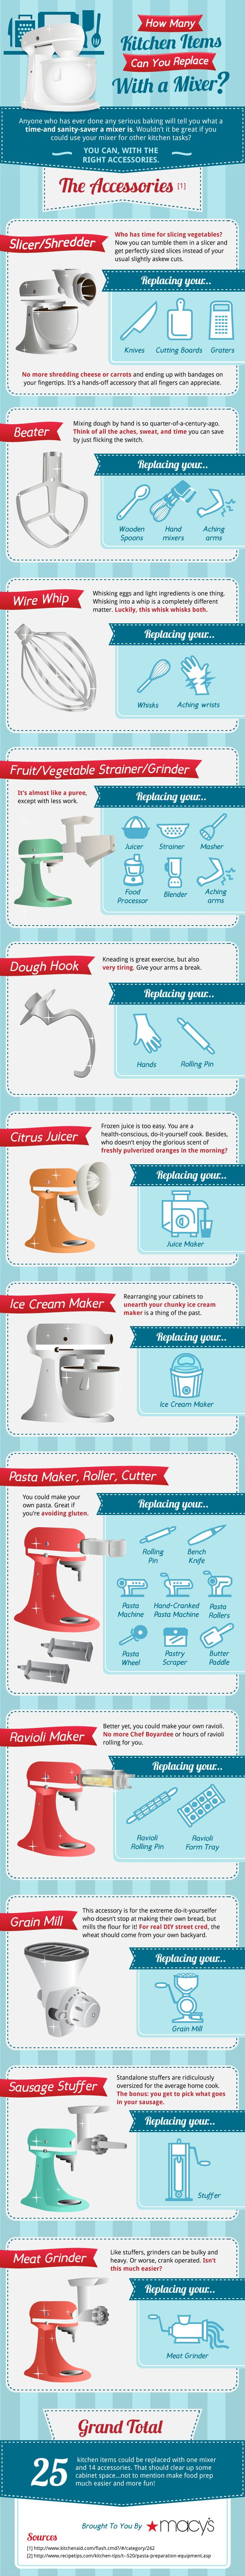 How Many Kitchen Items Can You Replace With a Mixer?